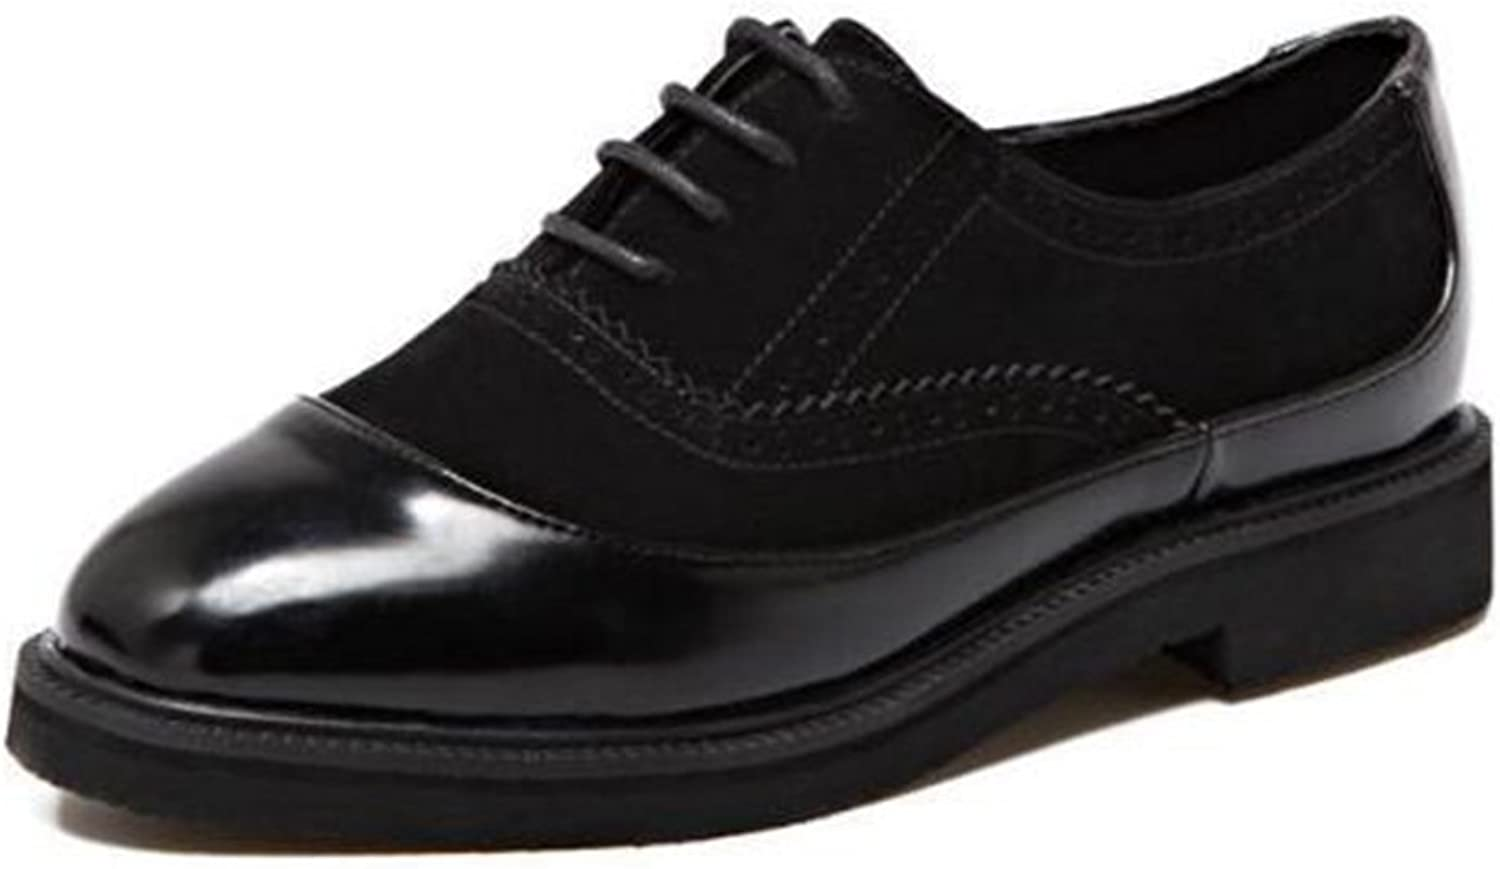 T-JULY Women's Wingtip Oxfords shoes - Comfy Low Heel Square Toe Lace-up Casual shoes